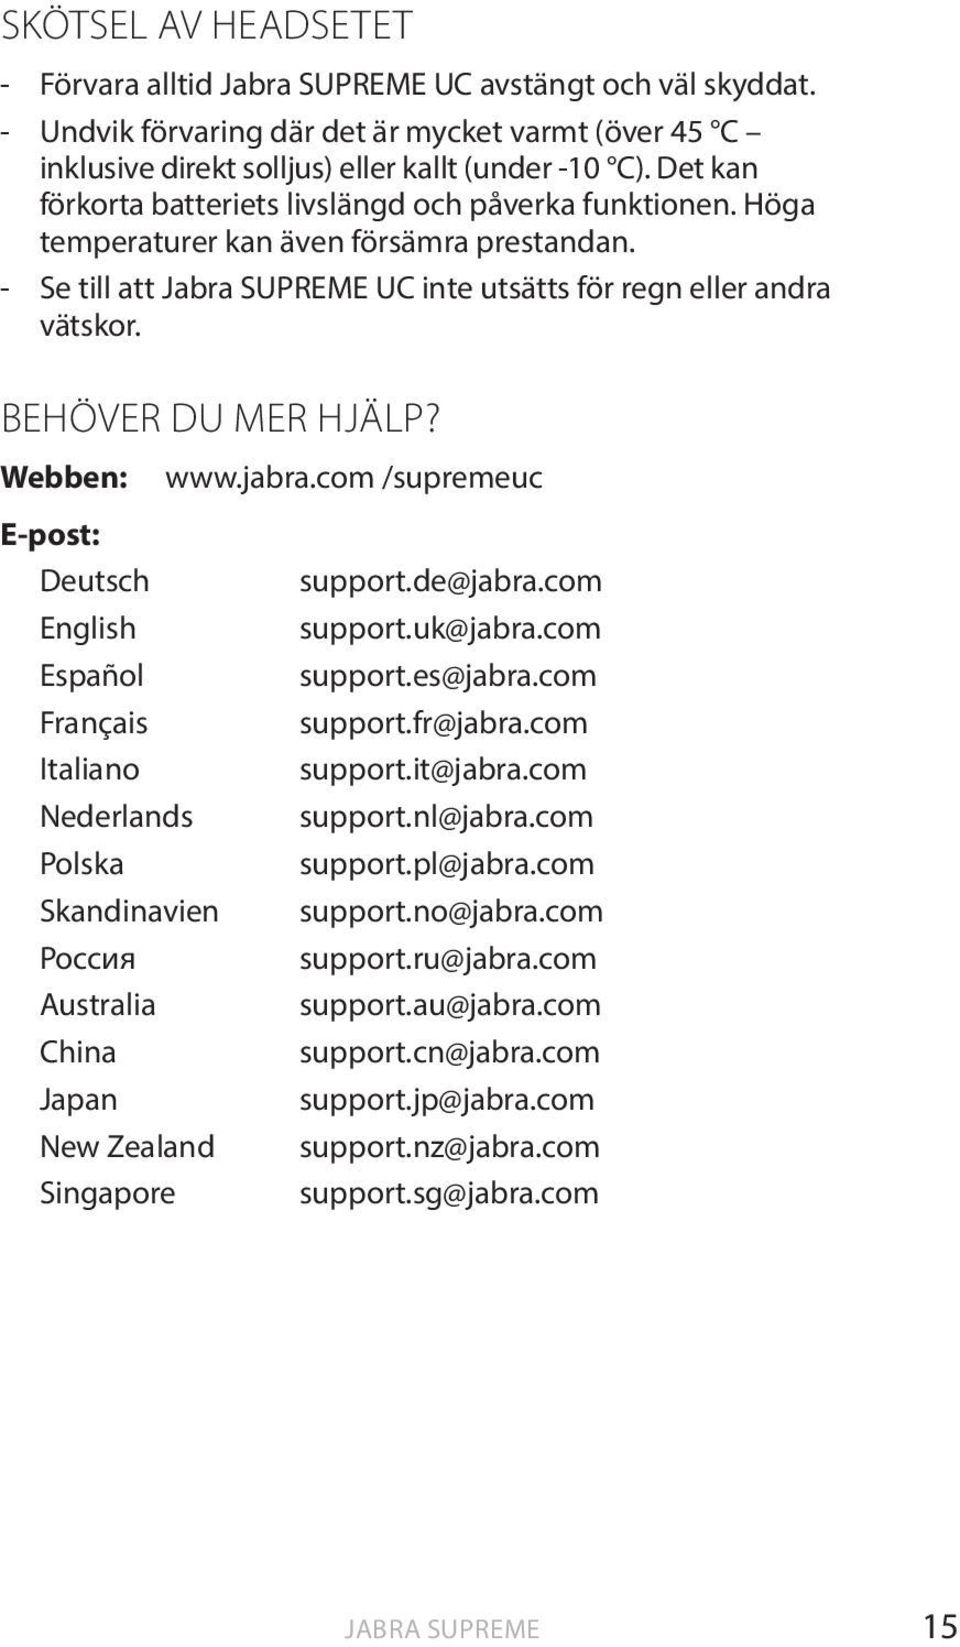 BEHÖVER DU MER HJÄLP? Webben: E-post: Deutsch English Español Français Italiano Nederlands Polska Skandinavien Россия Australia China Japan New Zealand Singapore www.jabra.com /supremeuc support.